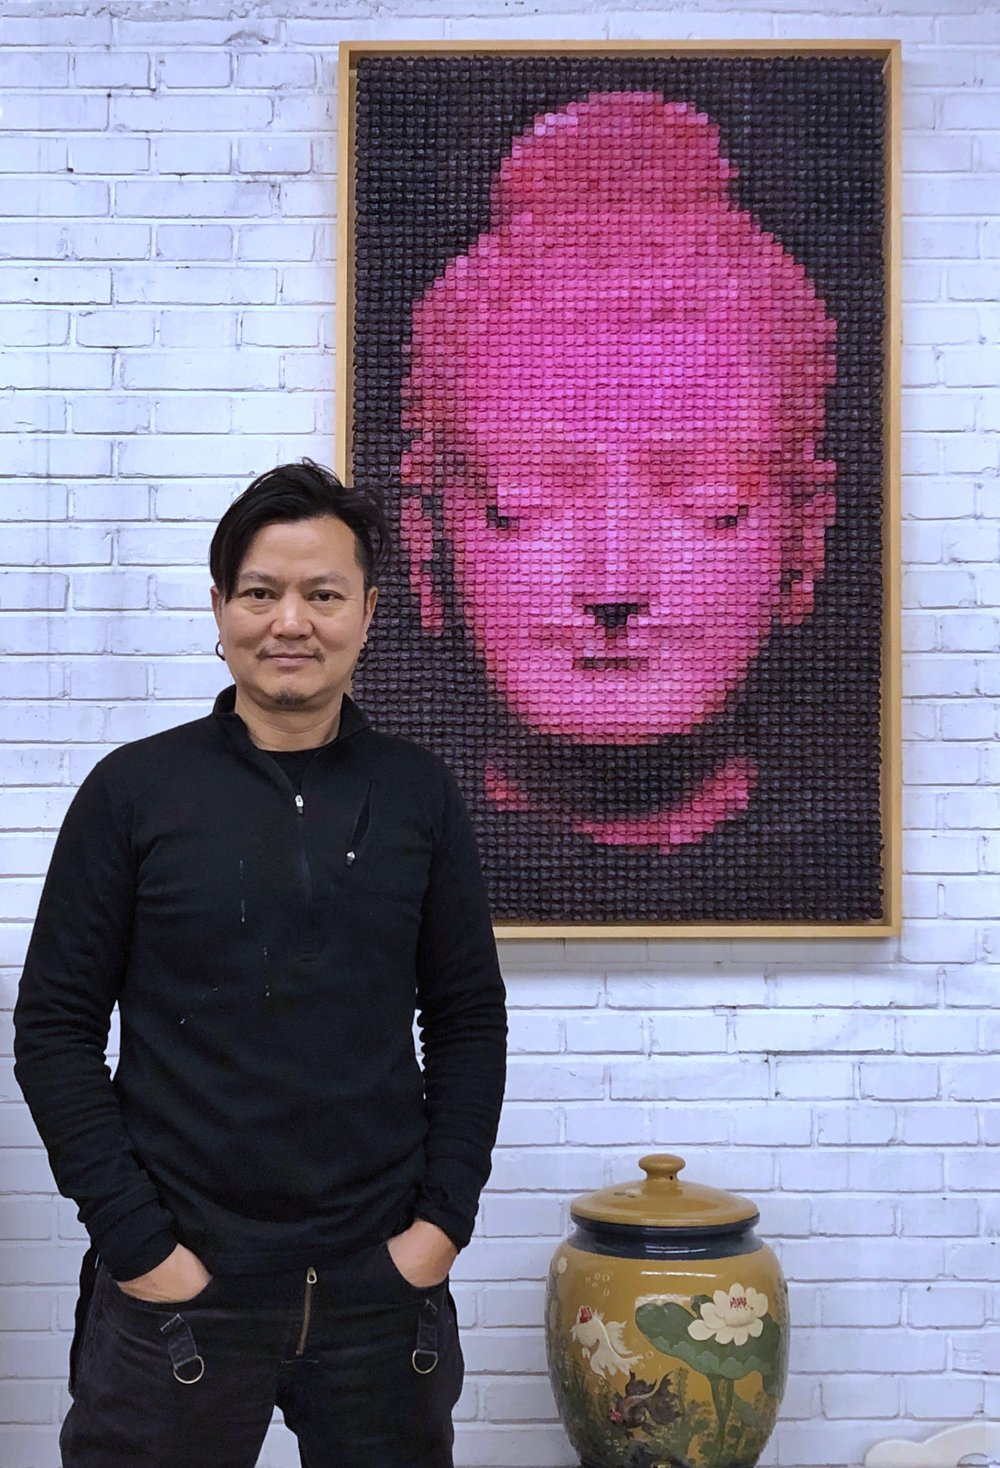 The artist stands in front of the artwork at the collector's house